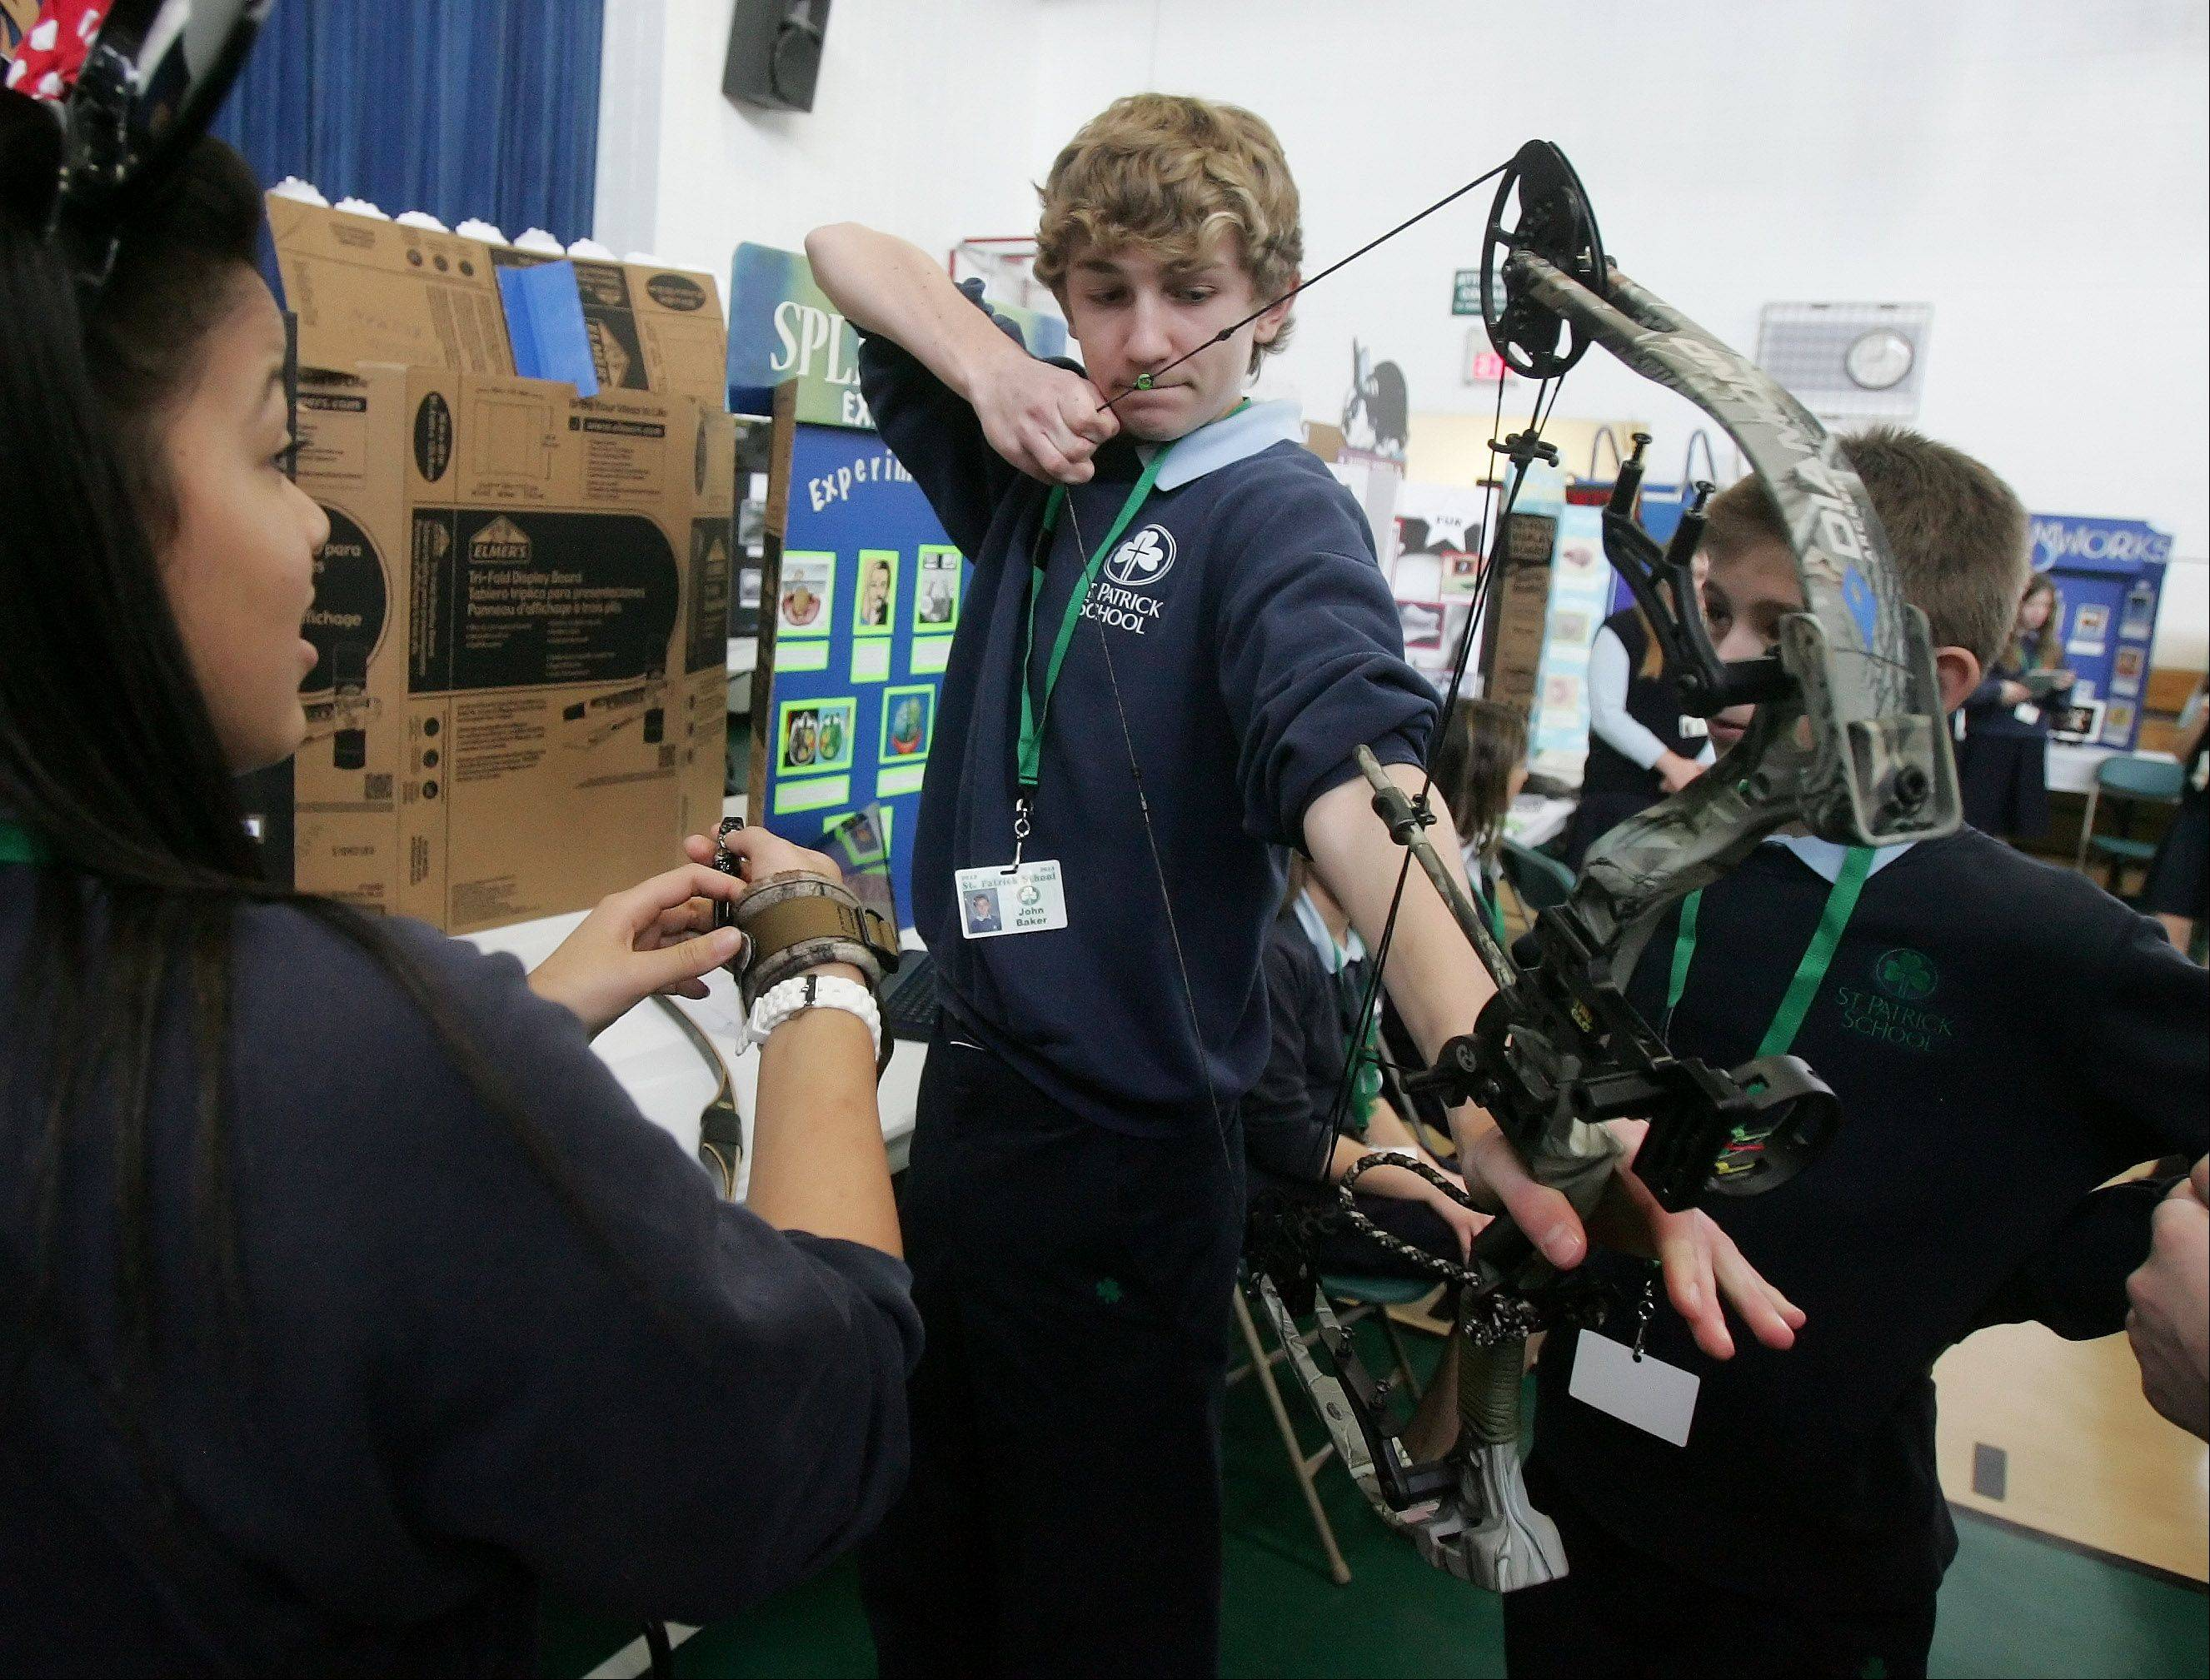 Eighth grader John Baker demonstrates his bow at his exhibit on archery during the Academic Fair Wednesday at St. Patrick Catholic School in Wadsworth.